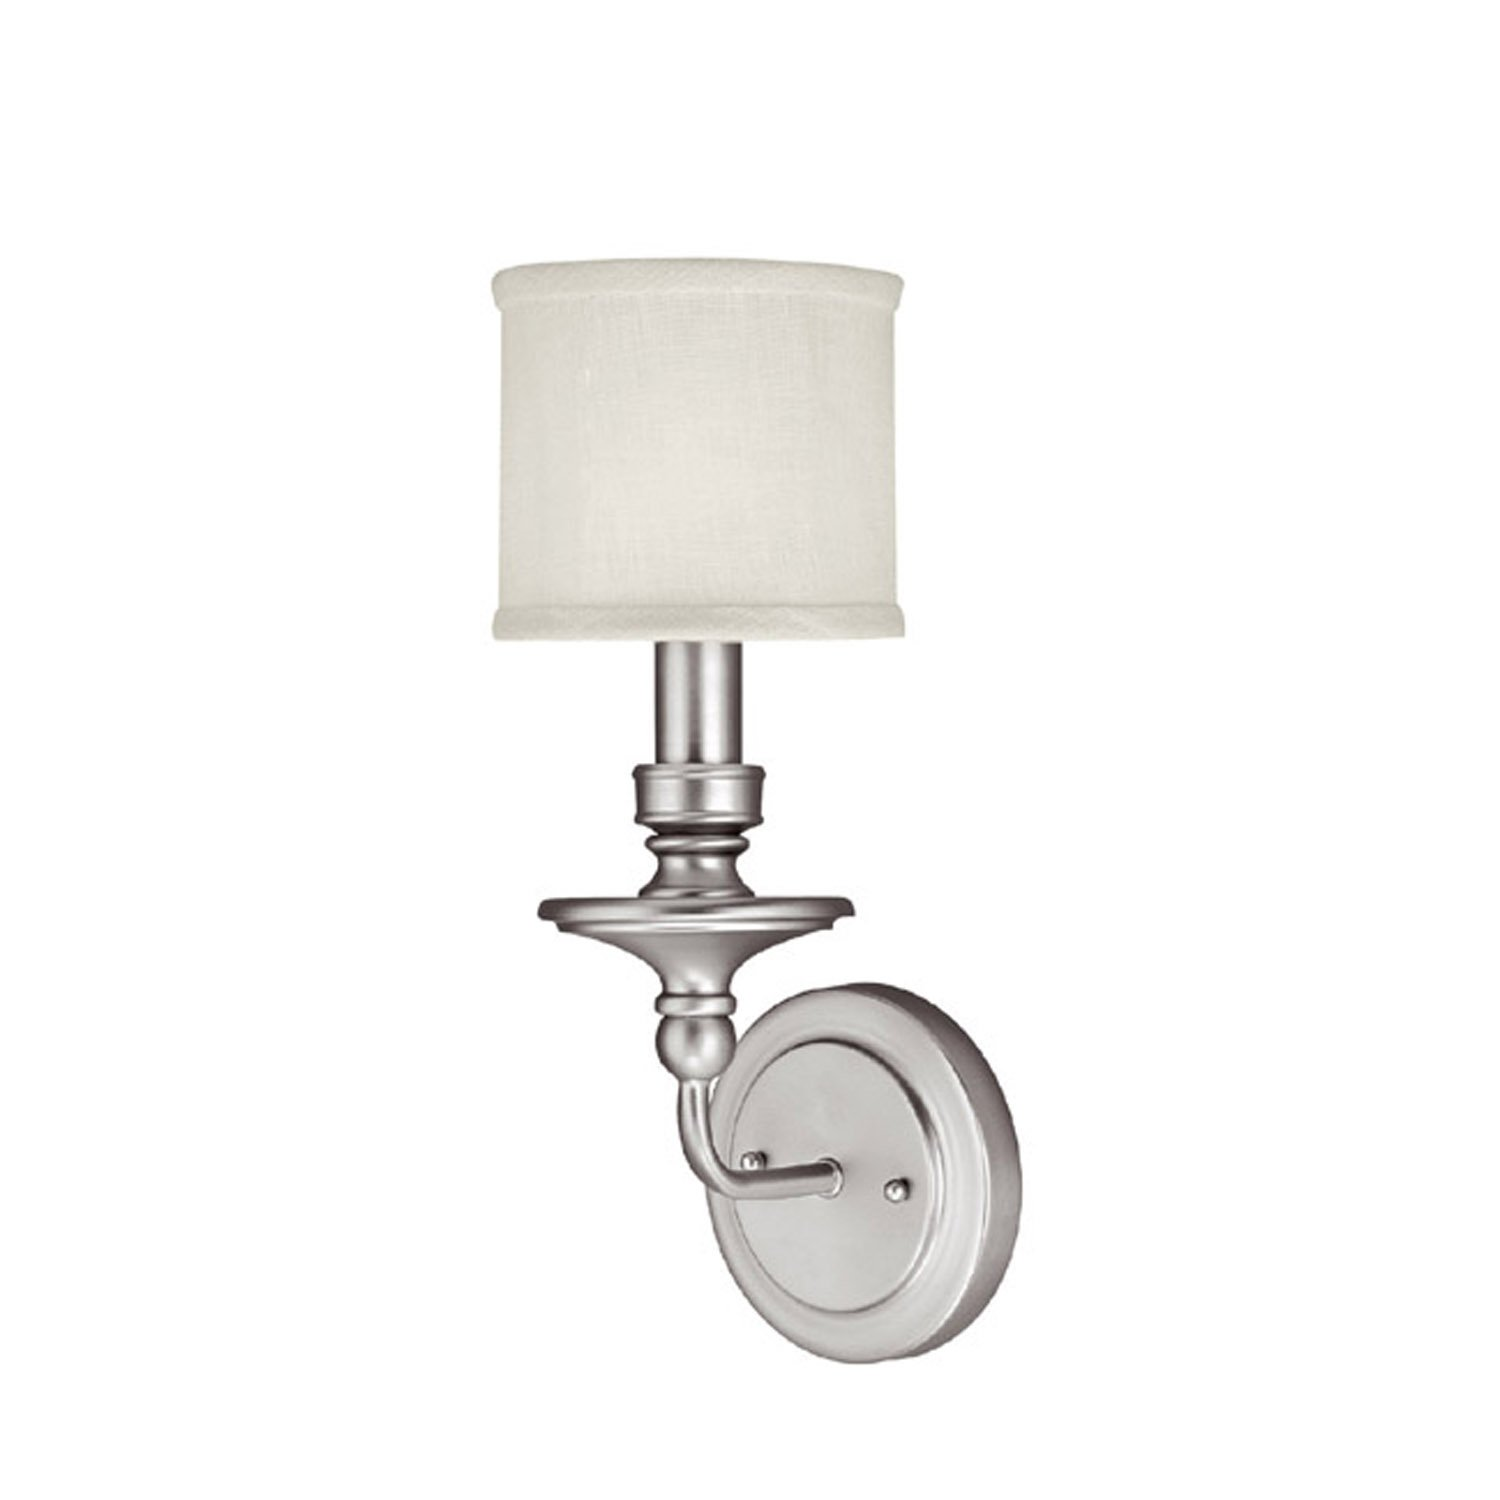 Capital Lighting 1231MN-451 Wall Sconce with White Fabric Shades, Matte Nickel Finish